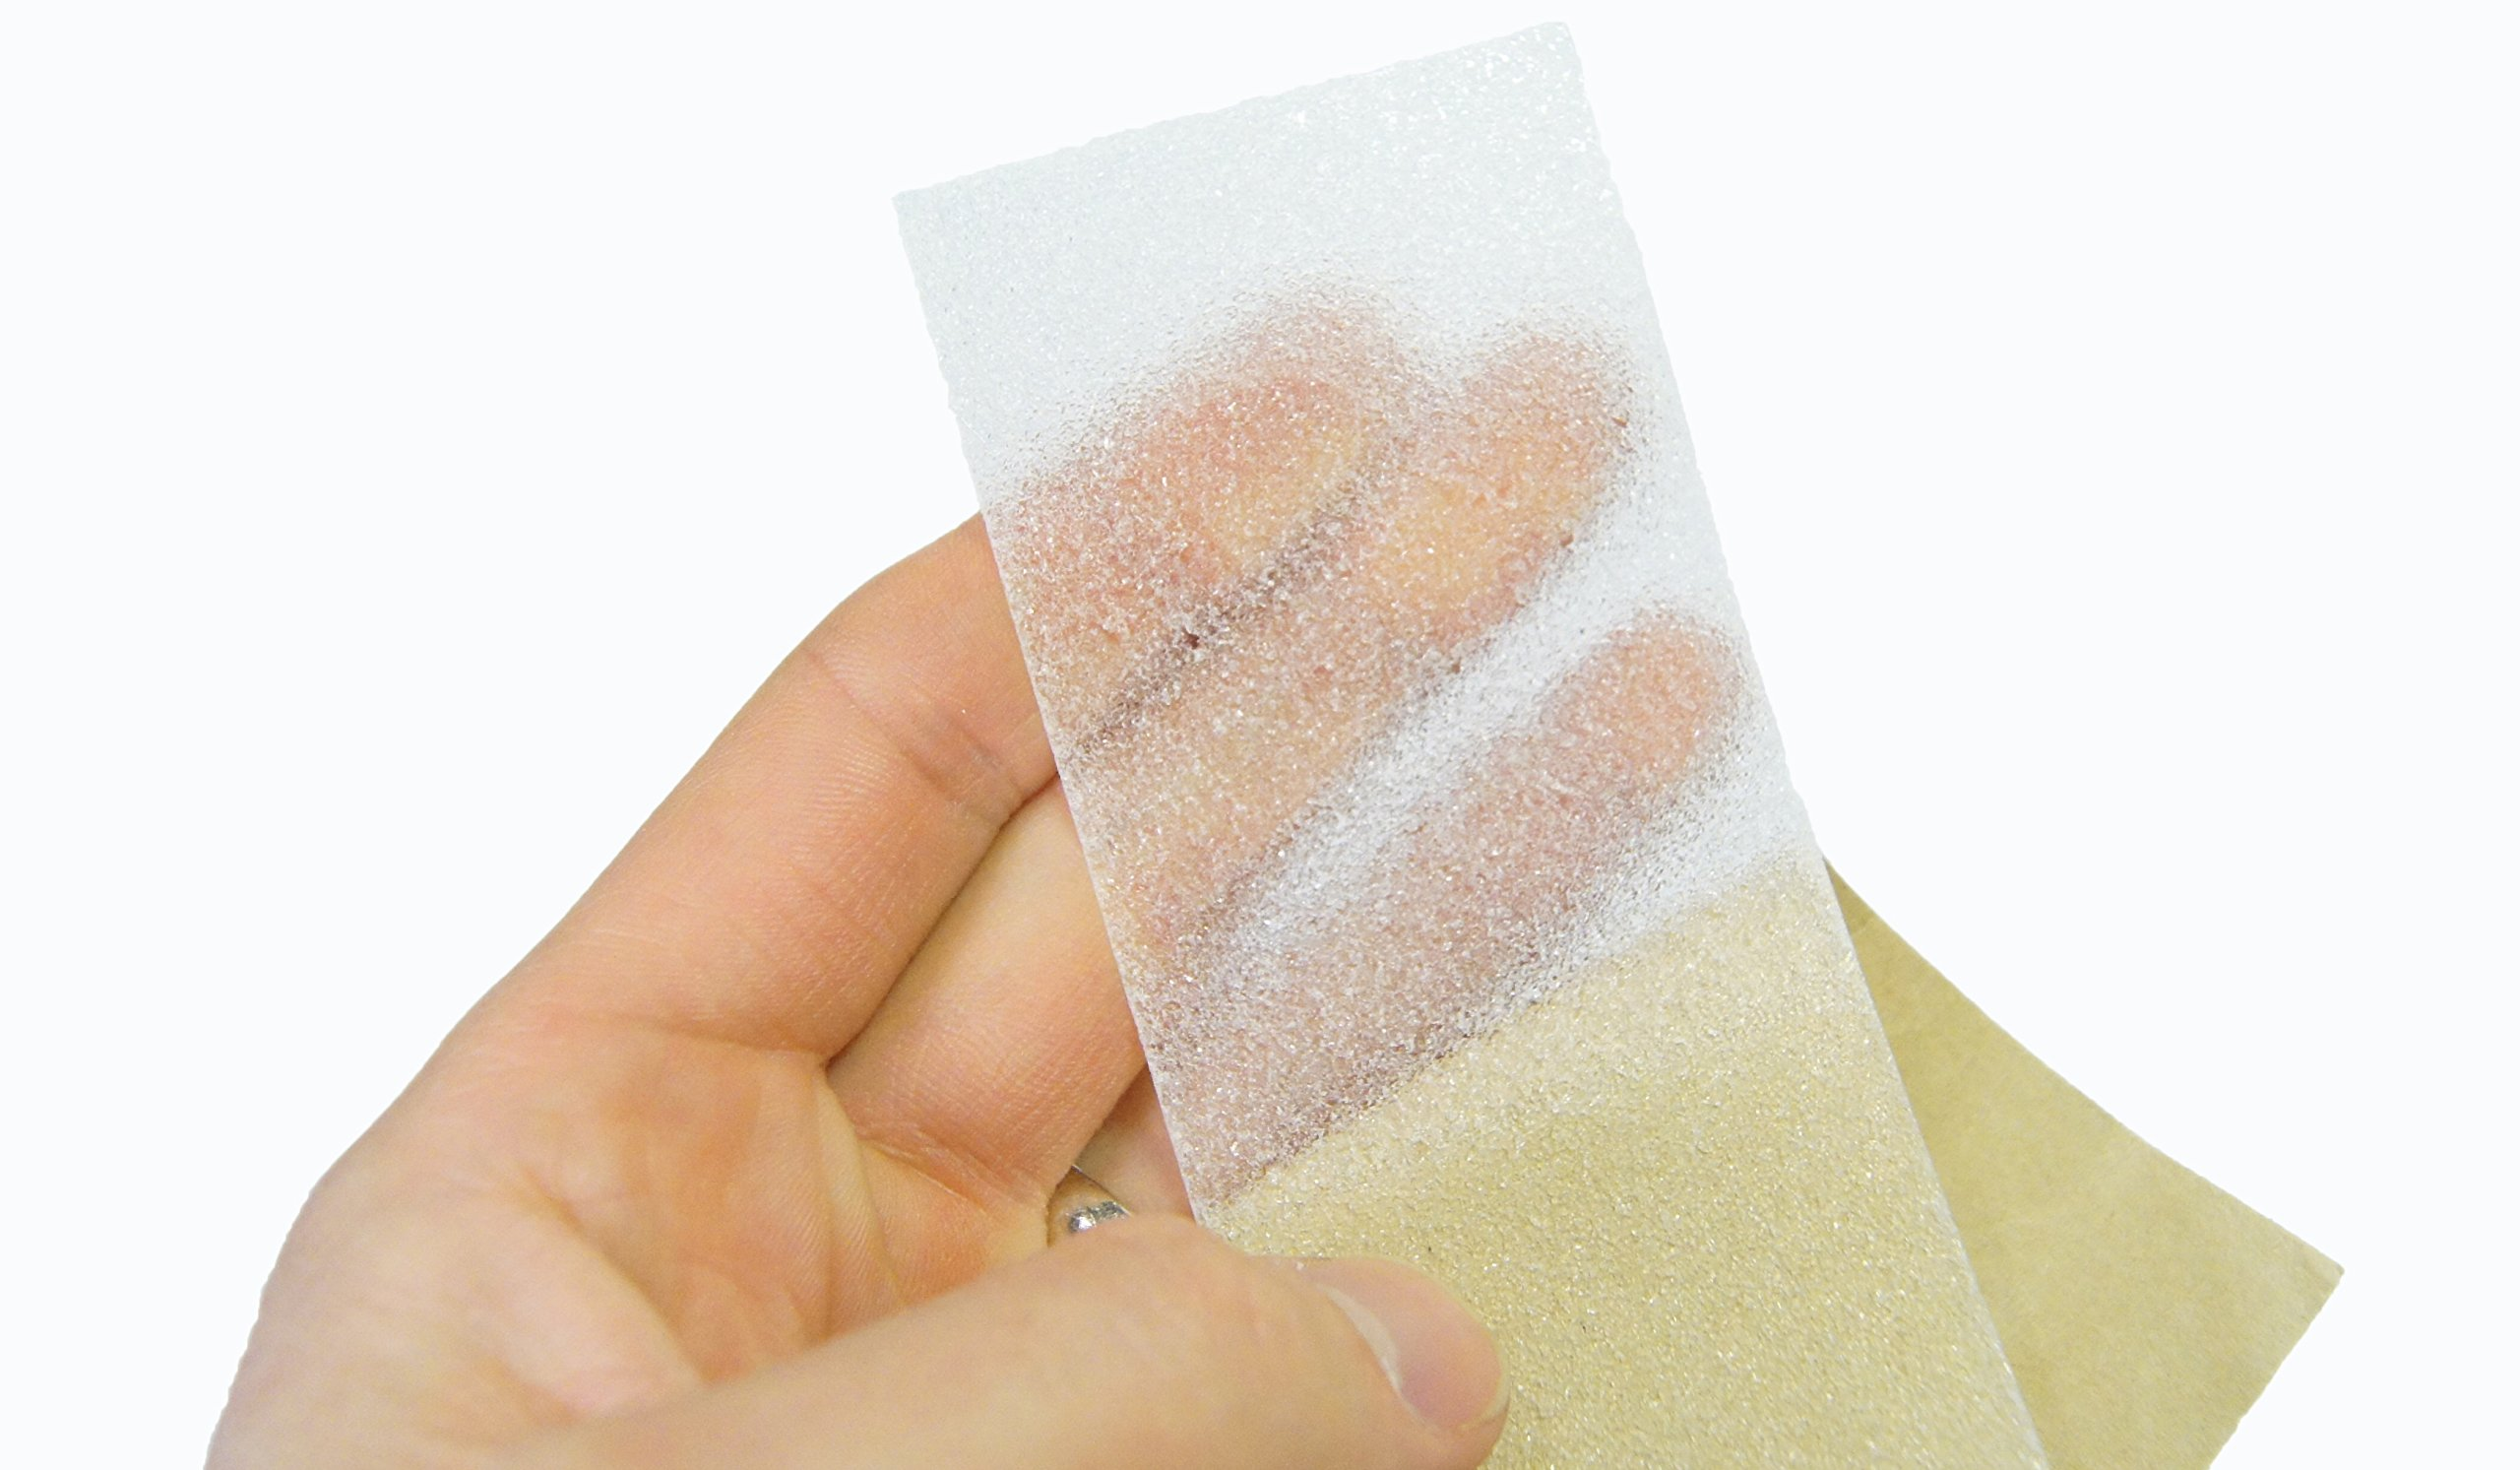 60 Foot, Non-Slip Clear, Translucent Adhesive Grit Tape and Roller, PVC-Free, 2 Inch Wide Steady Treads Installation Kit